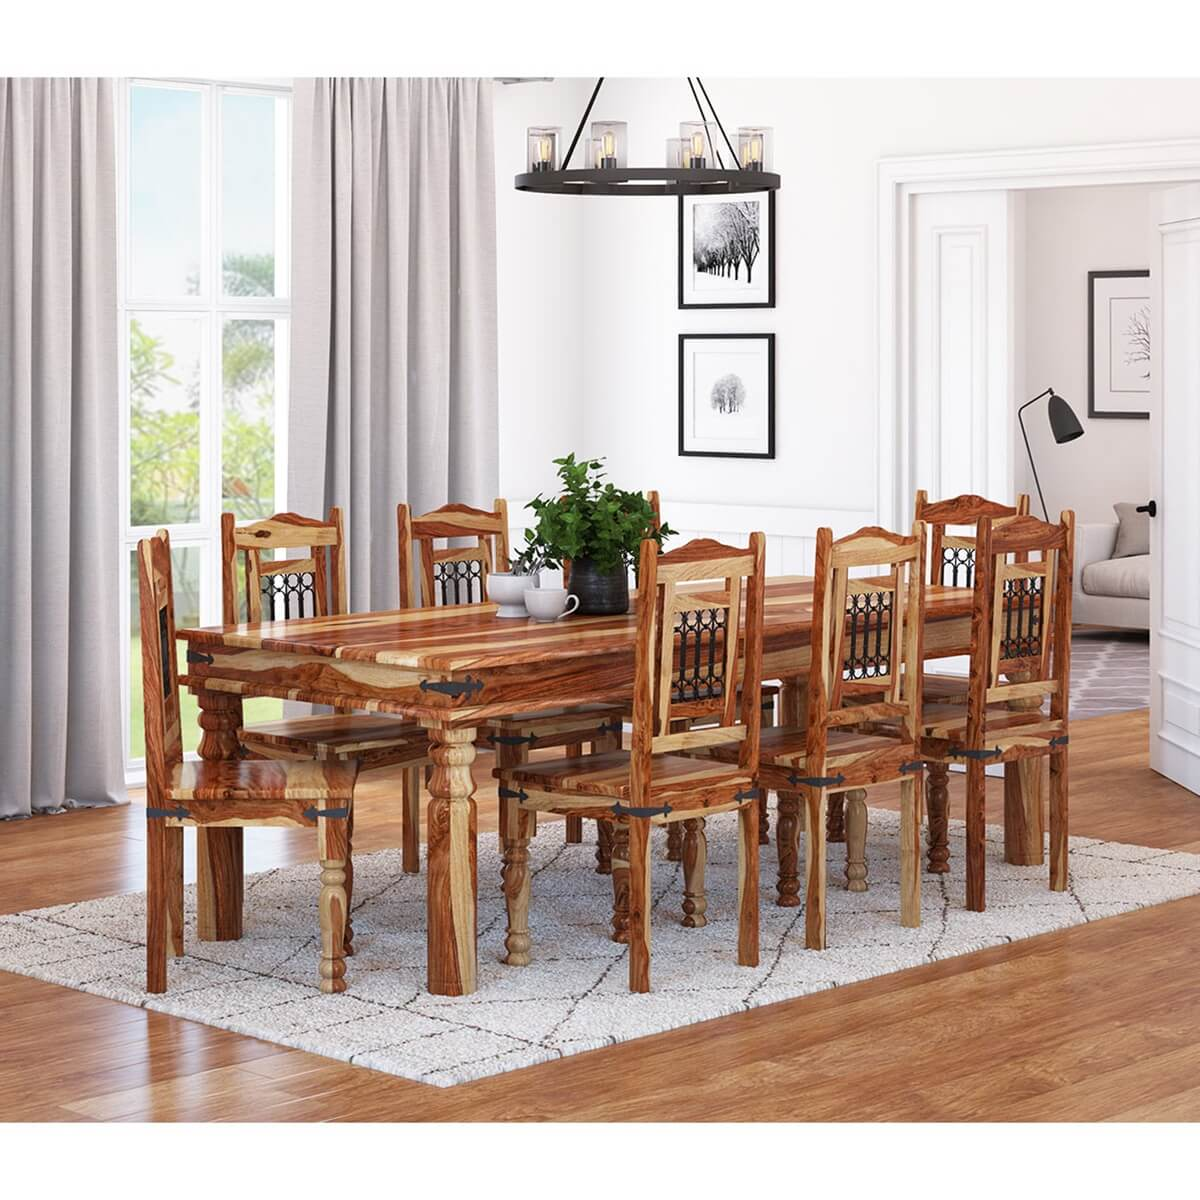 Dallas classic solid wood rustic dining room table and for Solid wood dining table sets